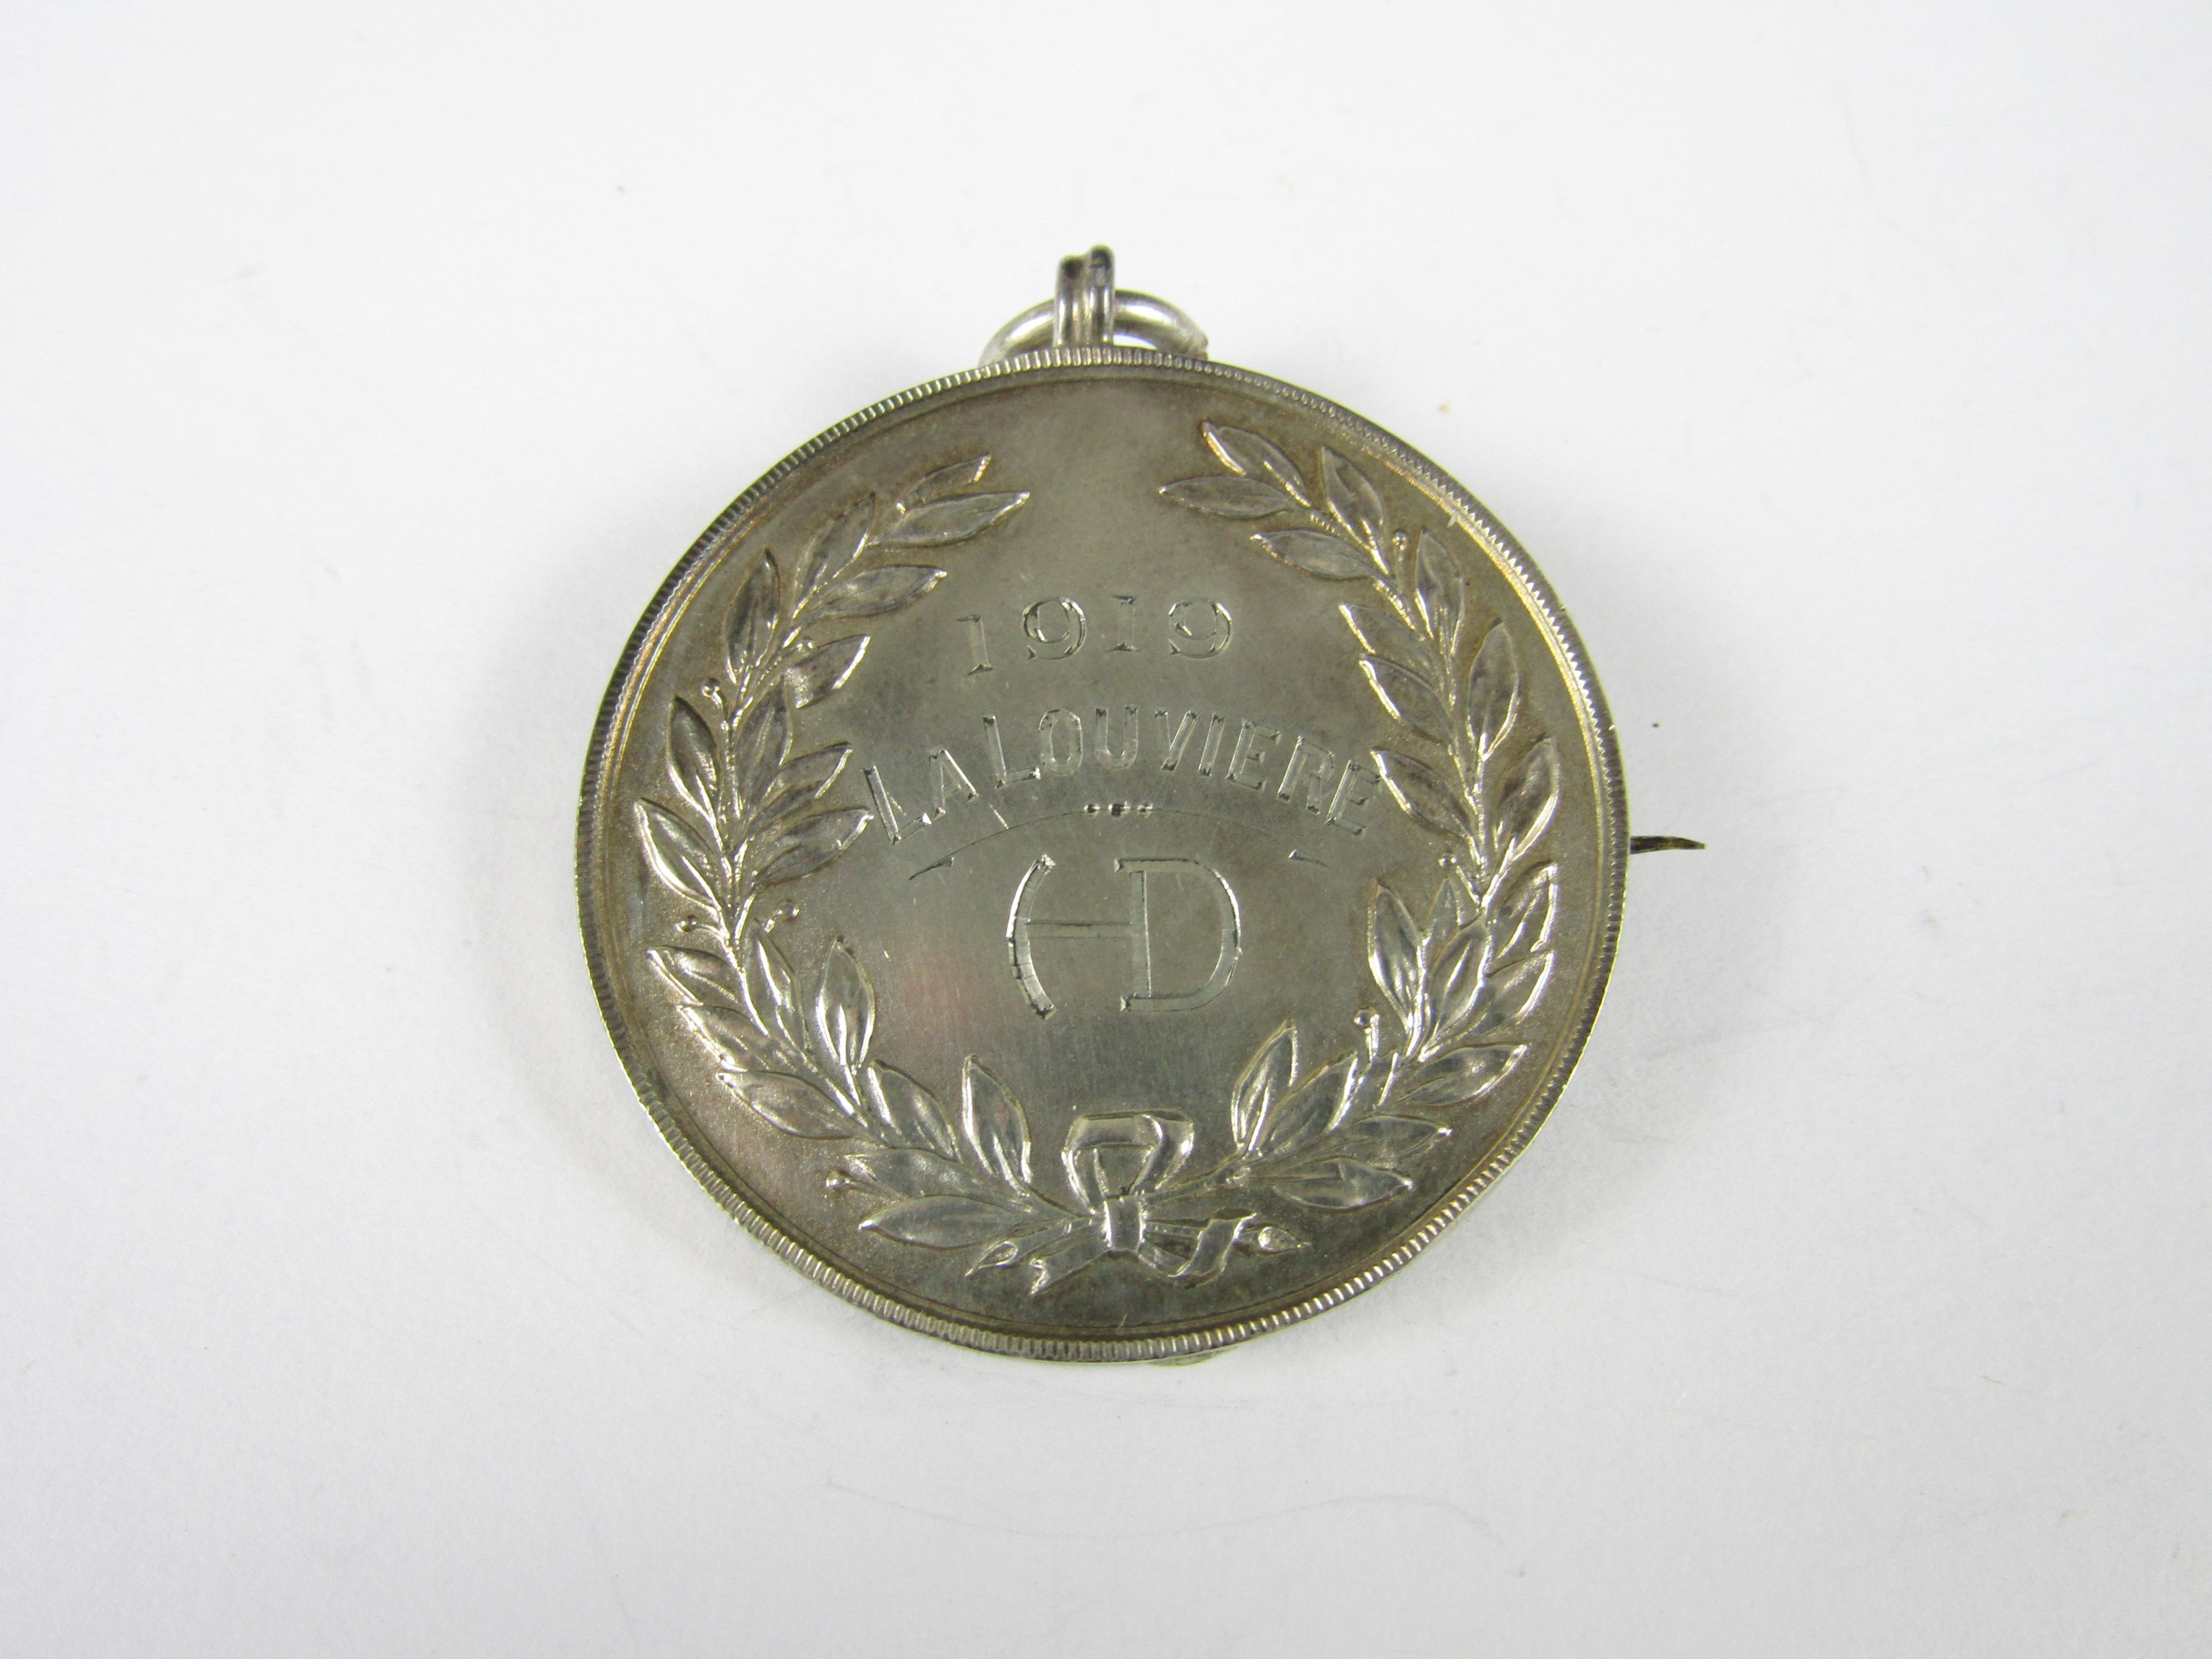 Lot 46 - A 1919 Highland Division silver prize medallion awarded to the Drummer A Galloway, 7th Argyll and